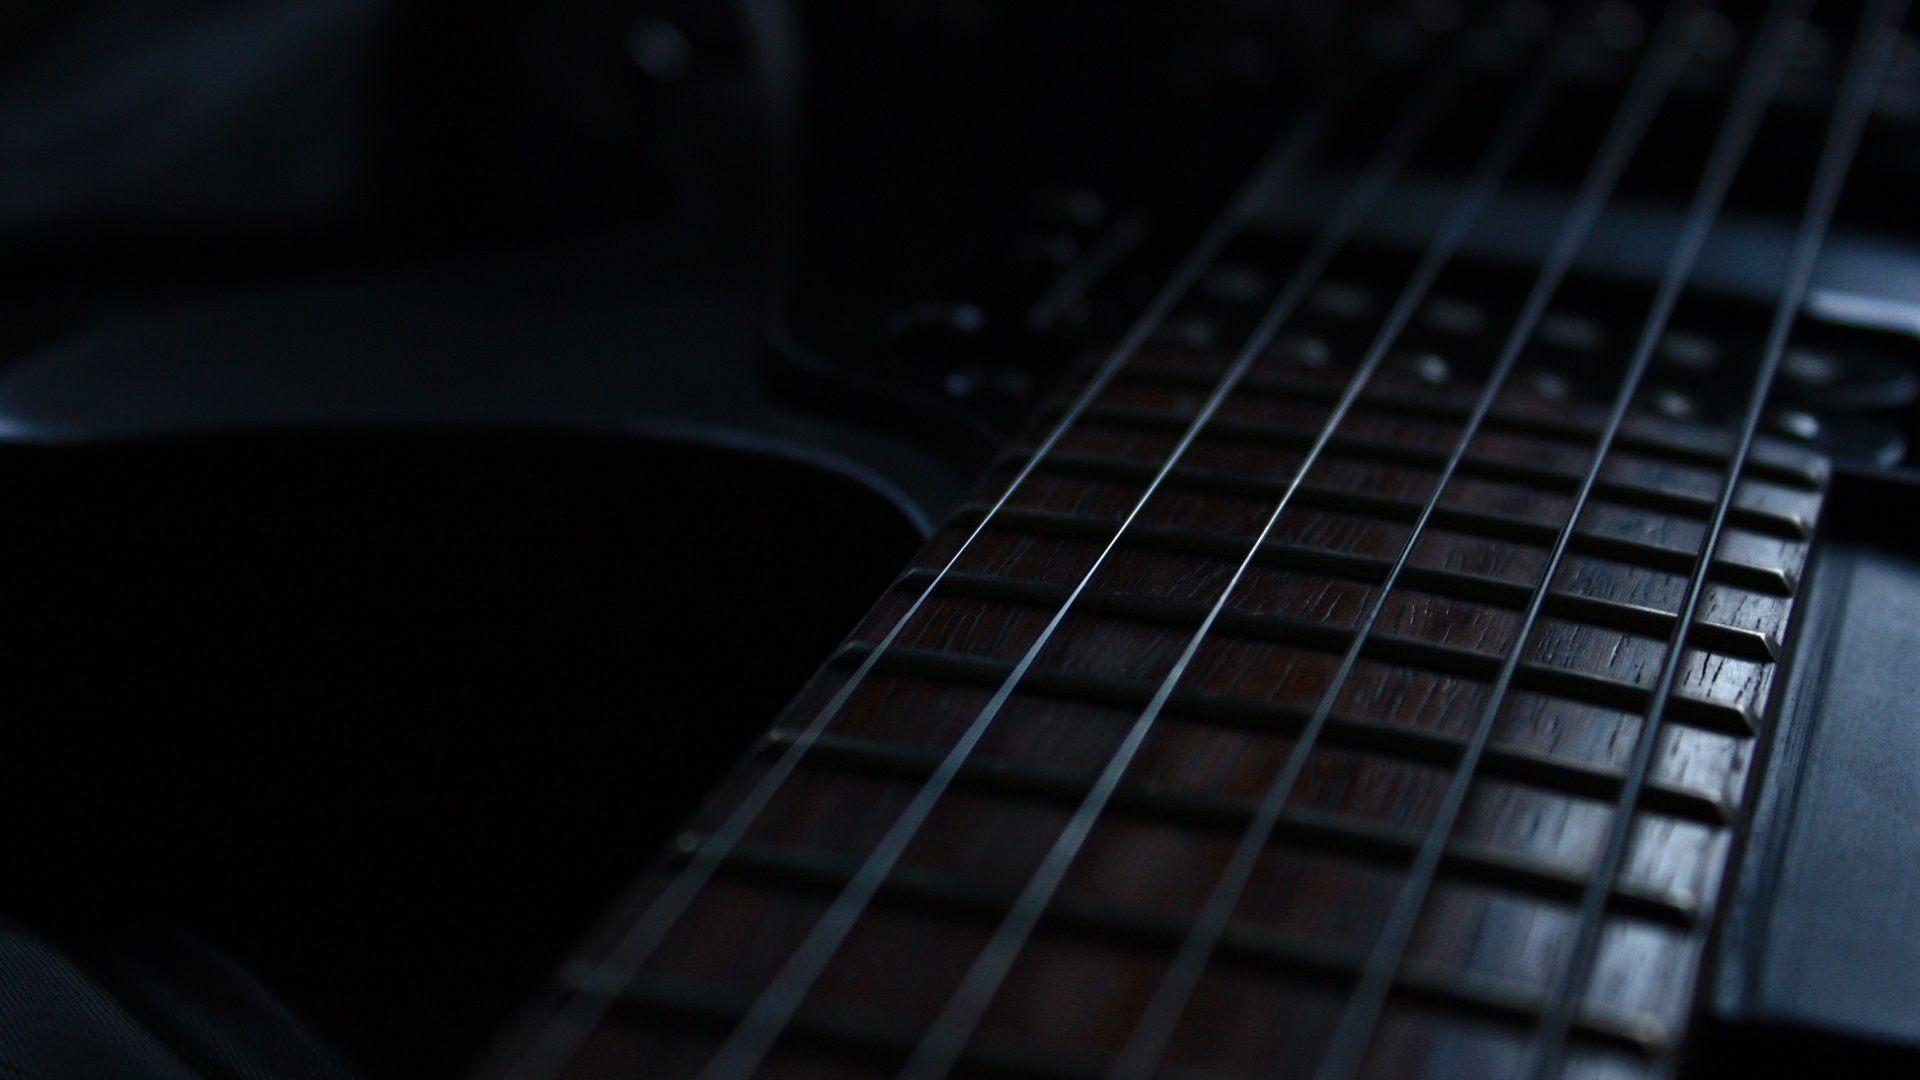 guitar wallpapers strings mac desktop wallpaper 1920x1080 1920x1080